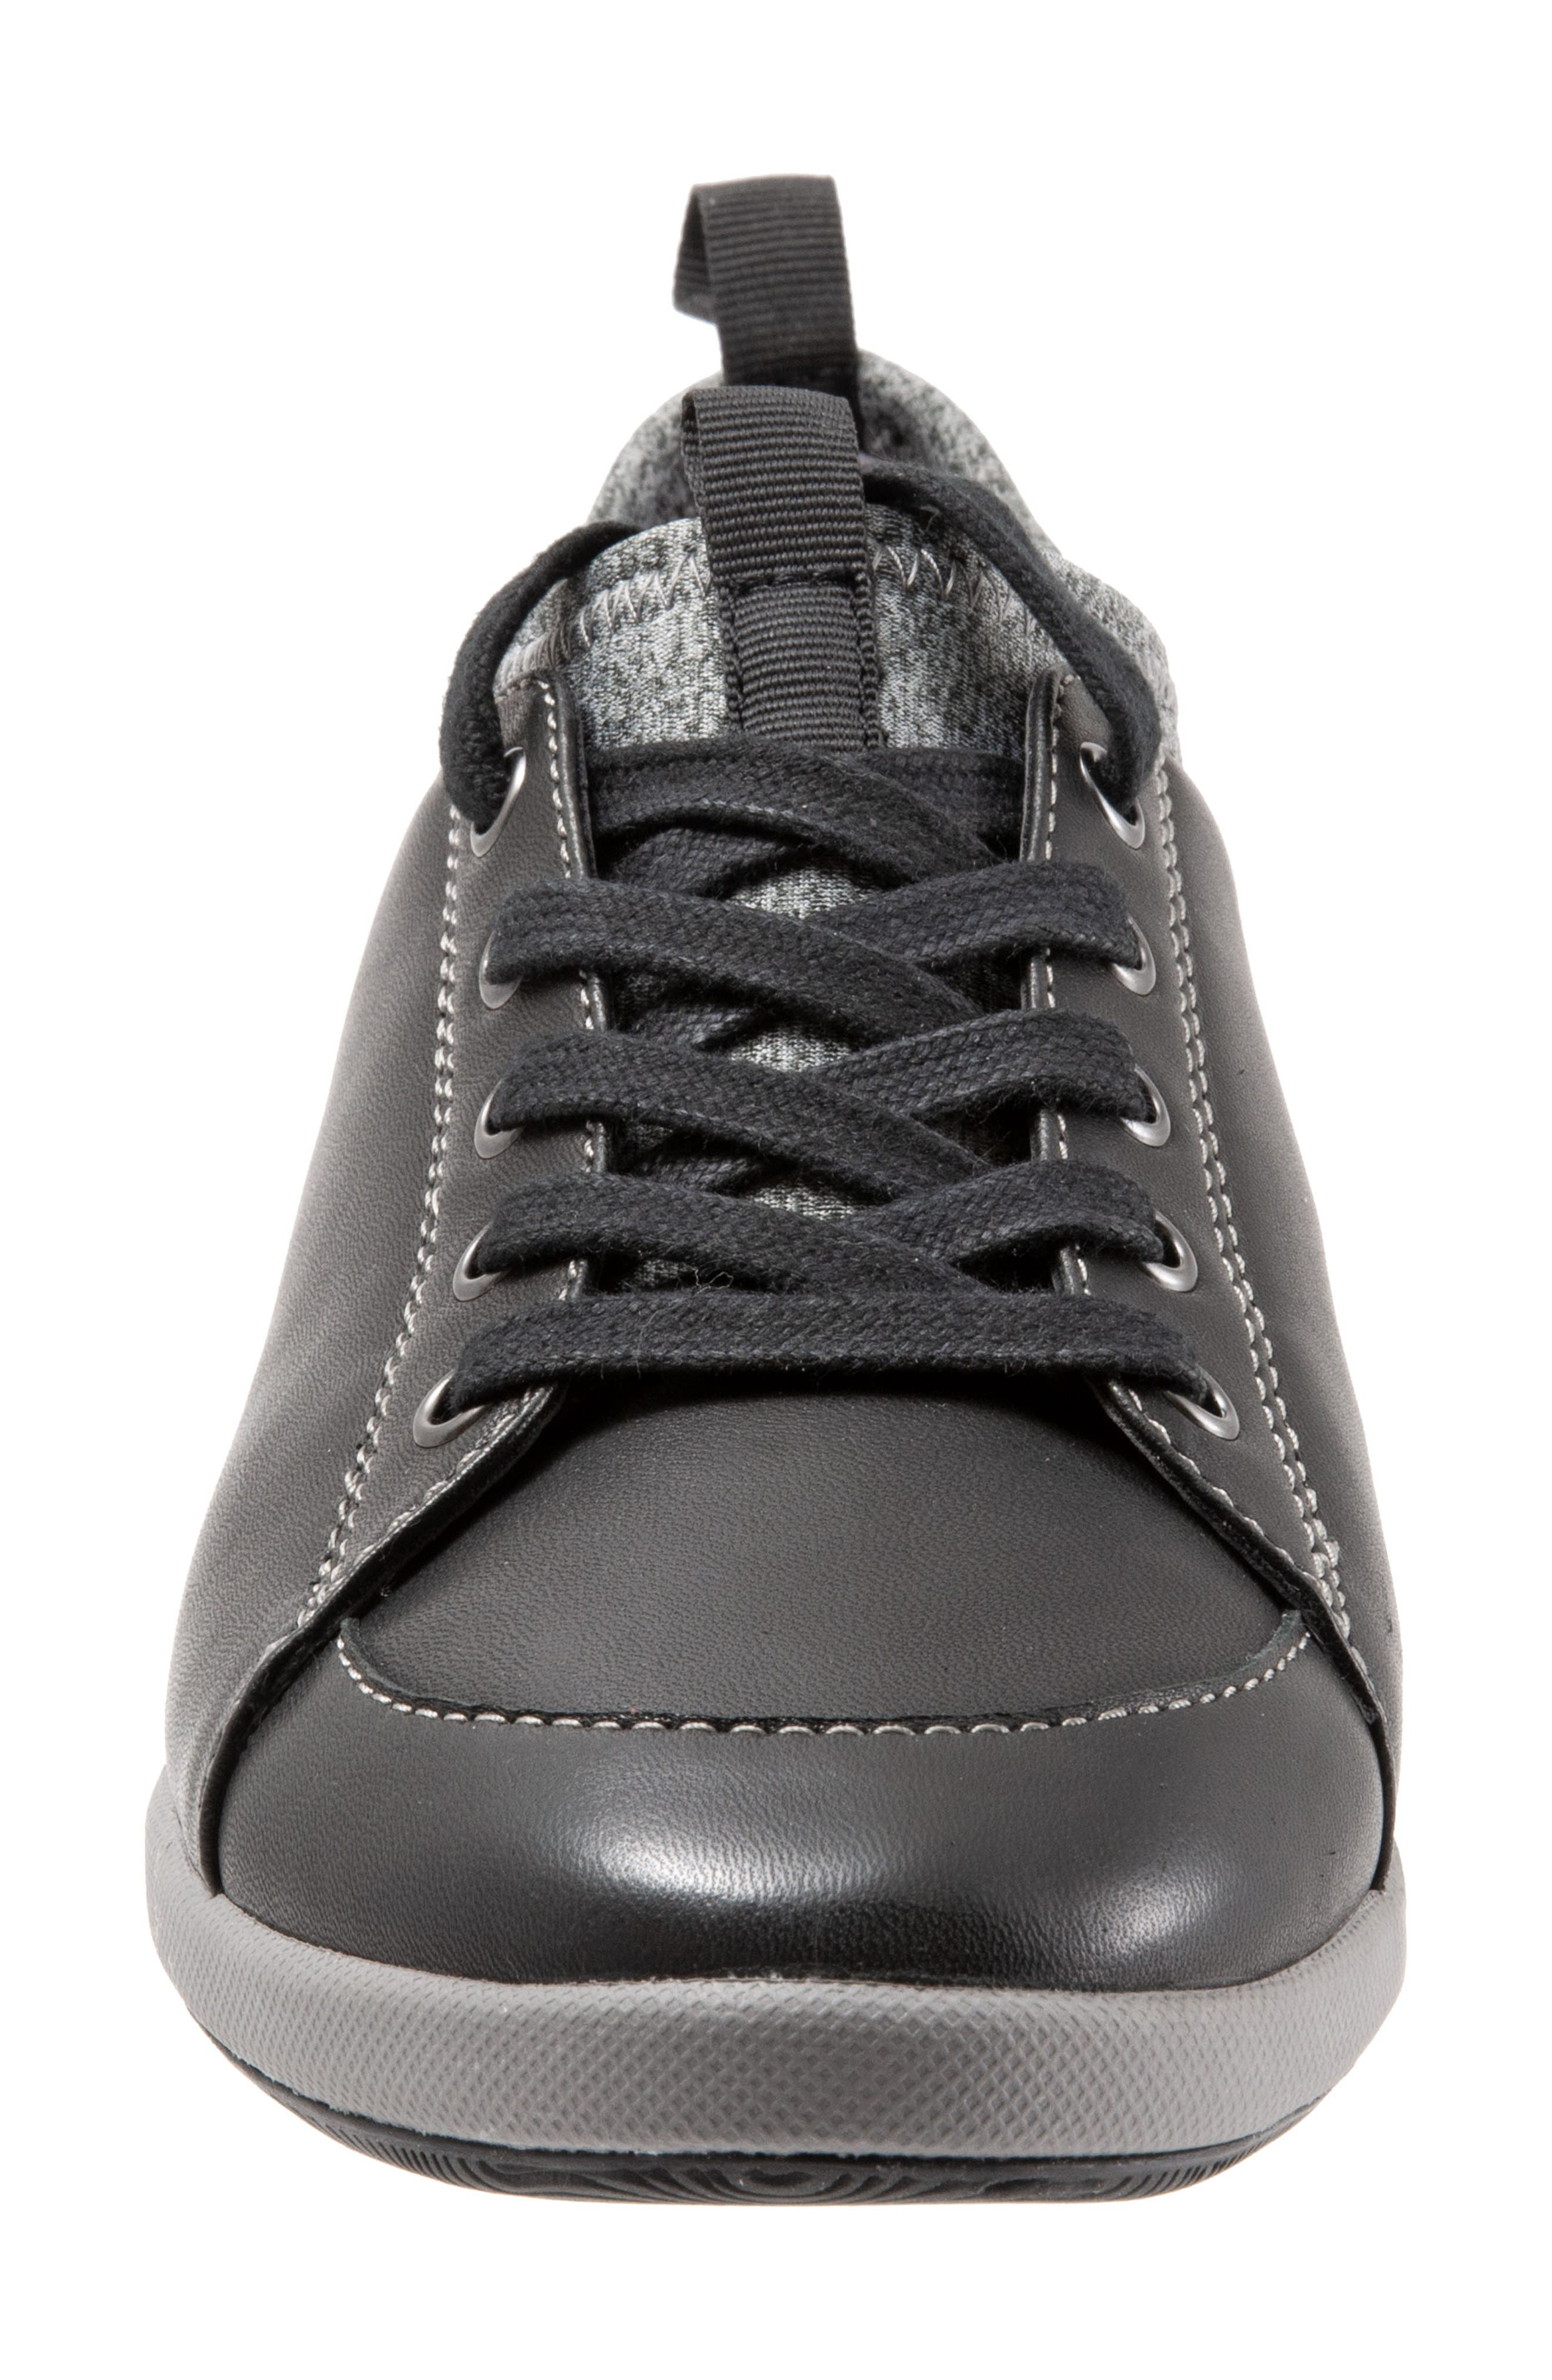 SAVA Haven Sneaker,                             Alternate thumbnail 4, color,                             BLACK/ GREY LEATHER